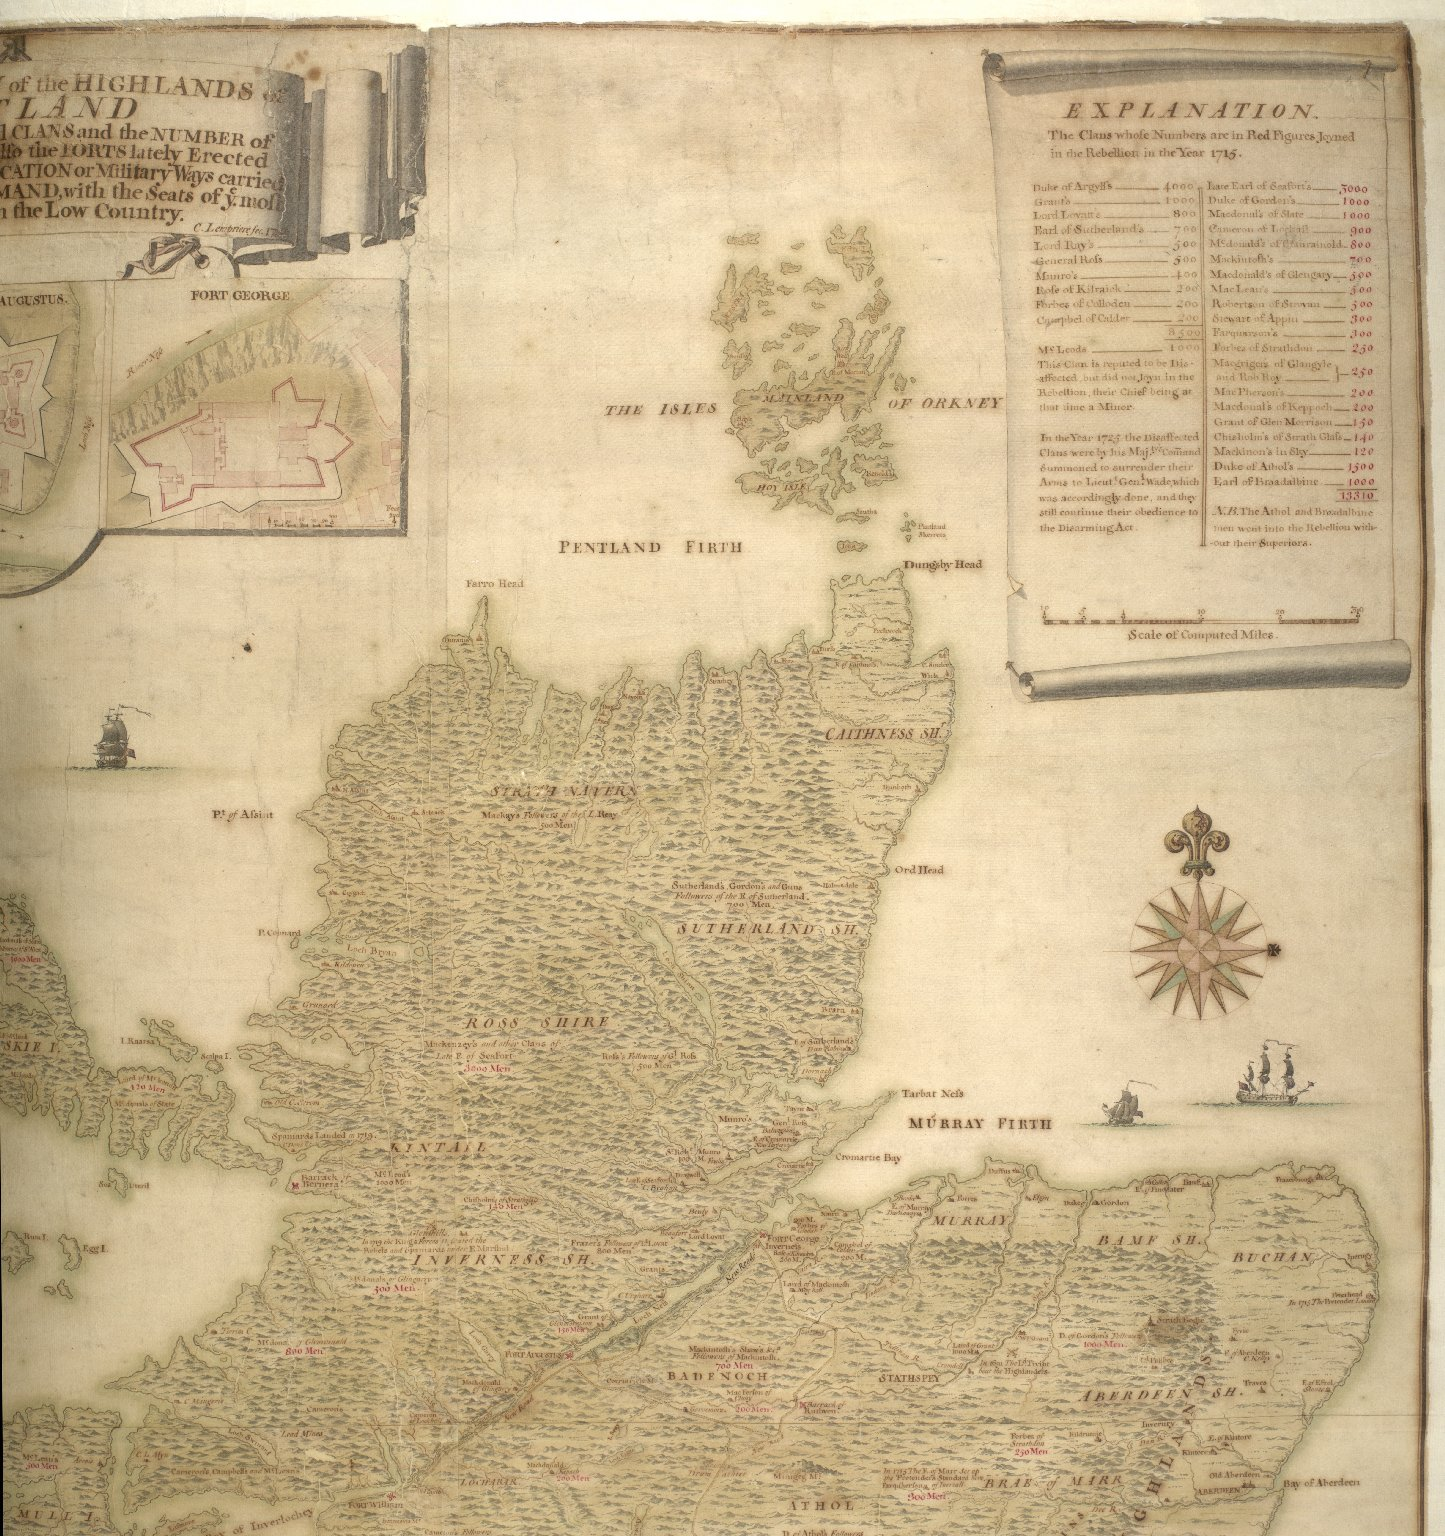 A description of the Highlands of Scotland, the situation of the several clans and the number of men able to bear arms, as also ye forts lately erected and roads of communication or military ways carried on by His Majesty's command ... [4 of 5]